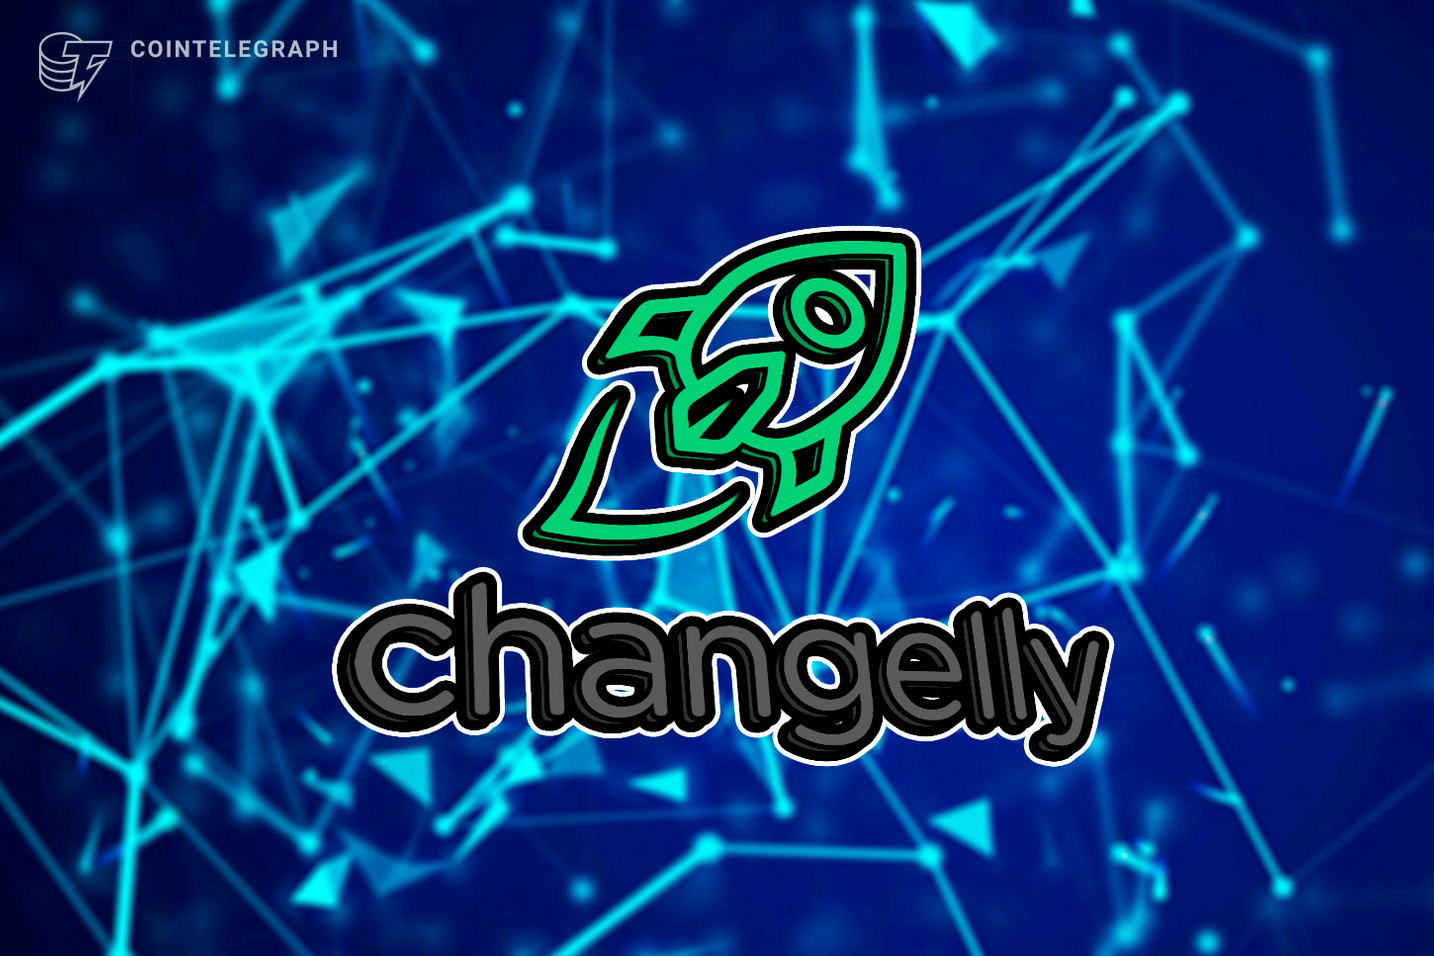 Changelly to Introduce Fiat-to-Crypto Marketplace